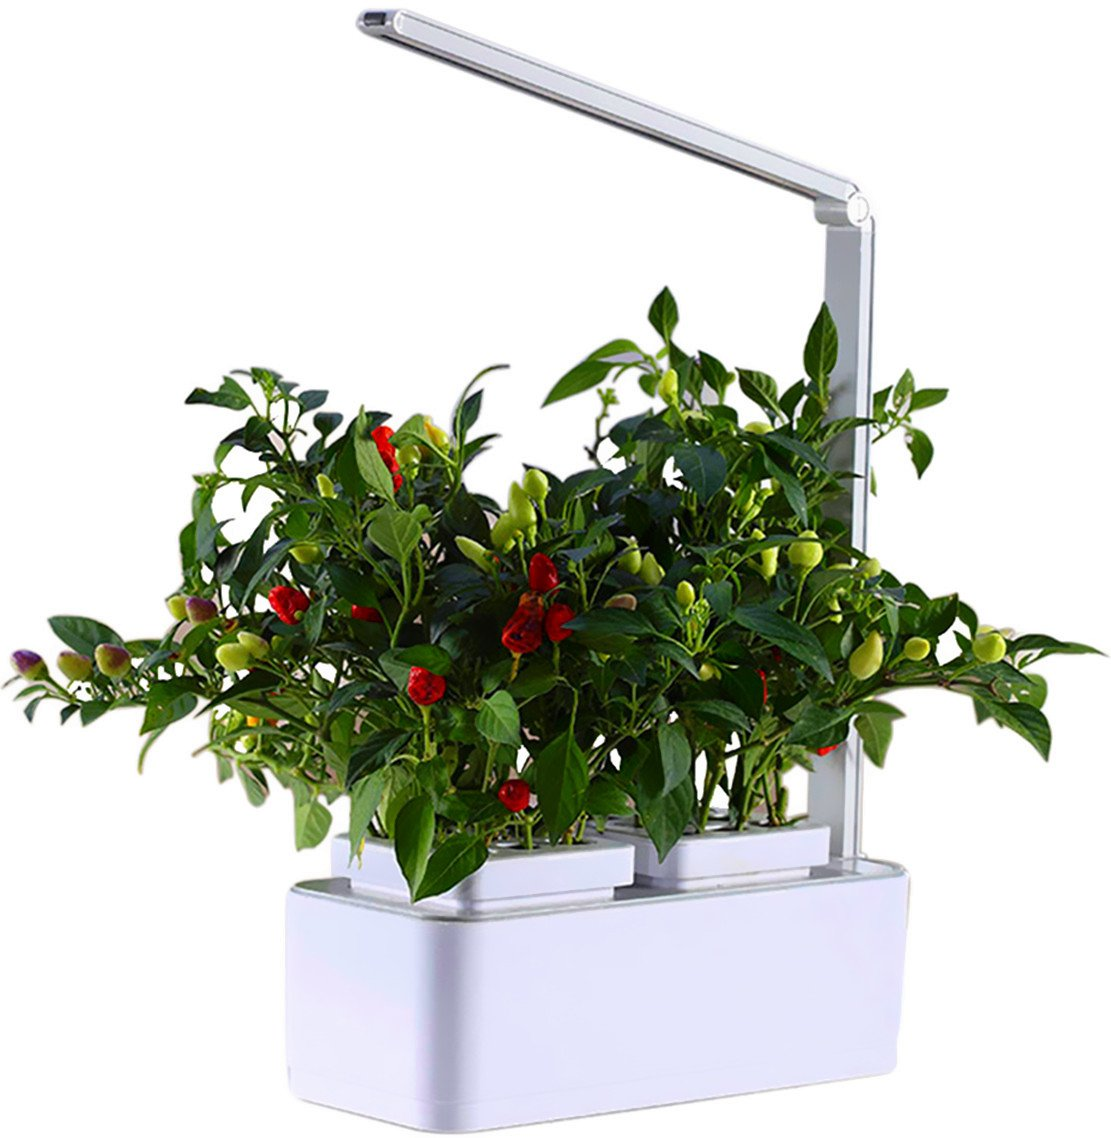 Amazon smart hydroponics indoor herb garden kit mini plant grow amazon smart hydroponics indoor herb garden kit mini plant grow led light growing system with self watering pots seeds planting mediumwhite light workwithnaturefo